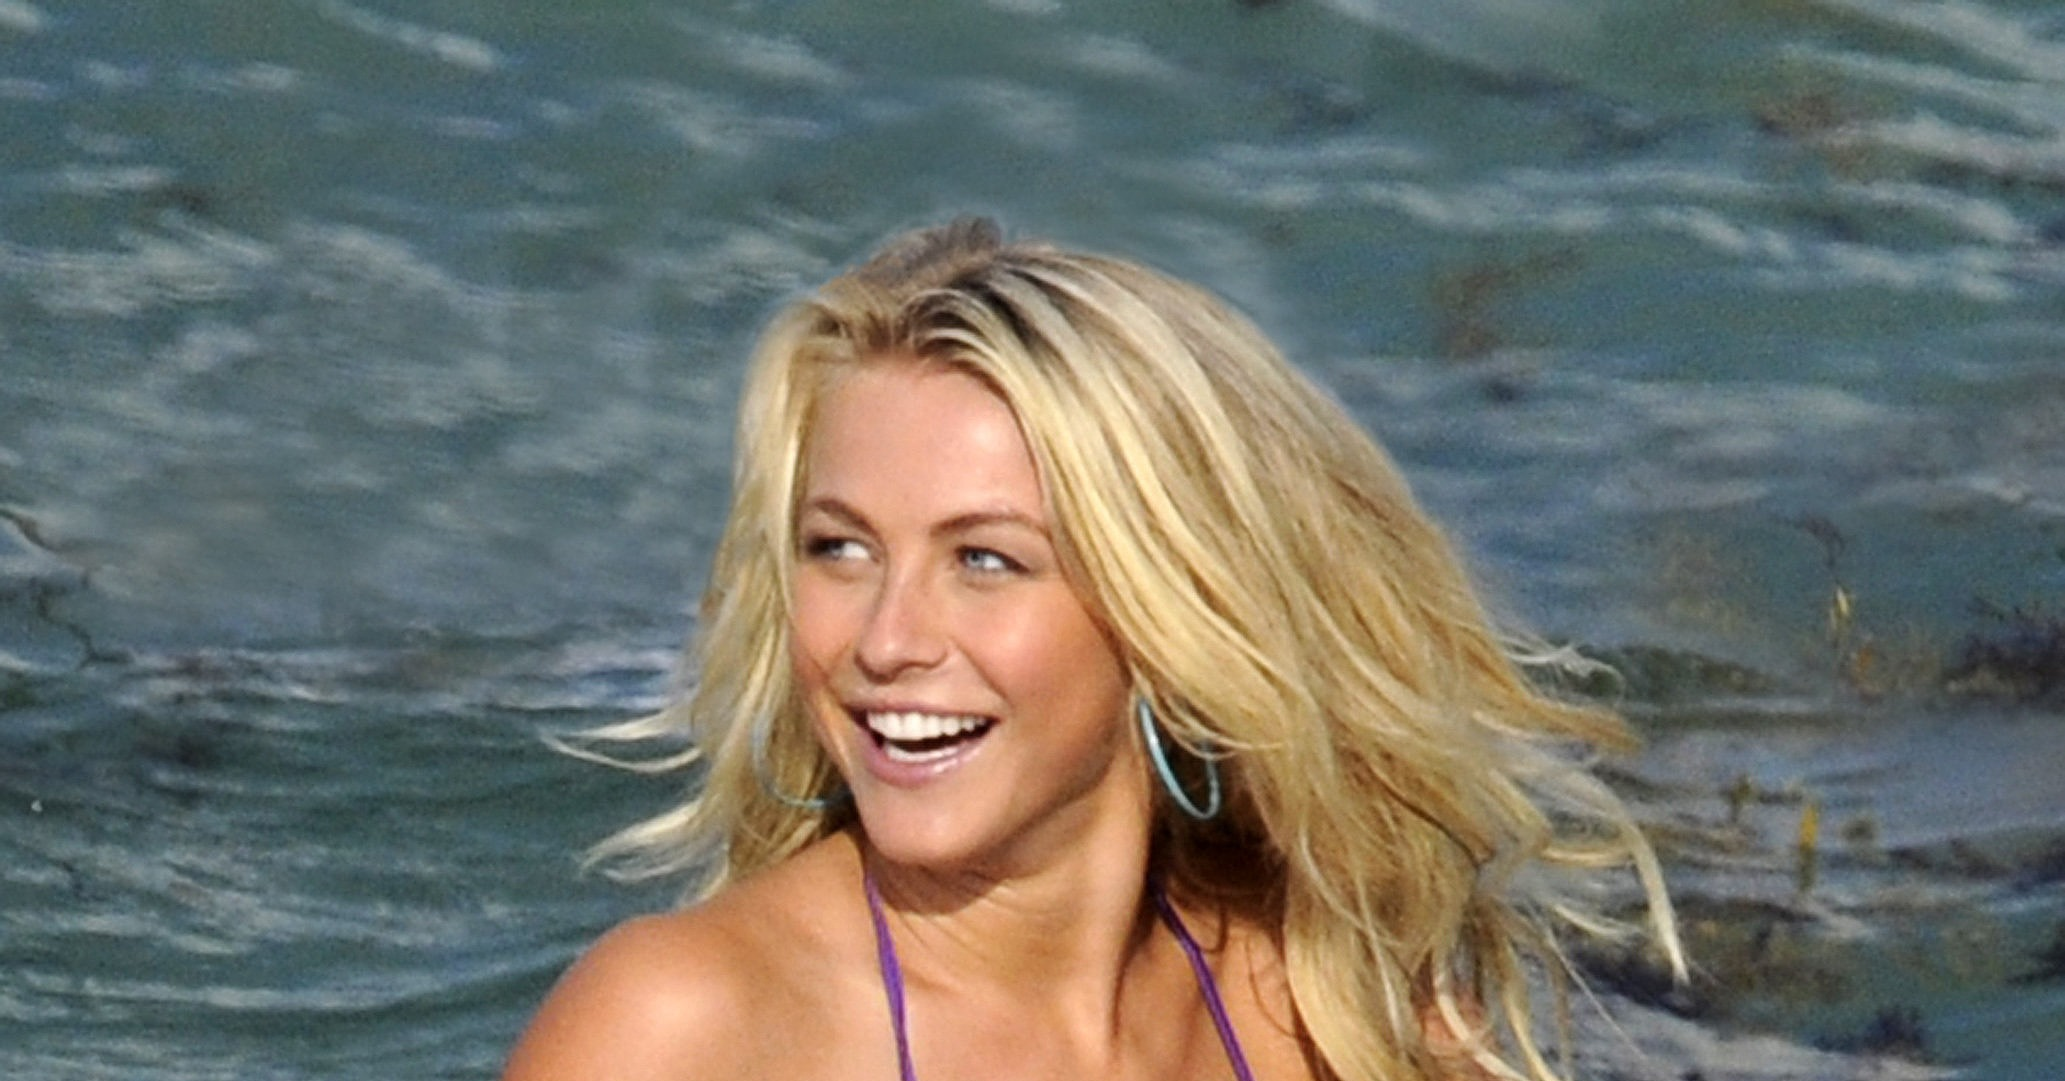 julianne hough wore a bikini to shoot rock of ages in